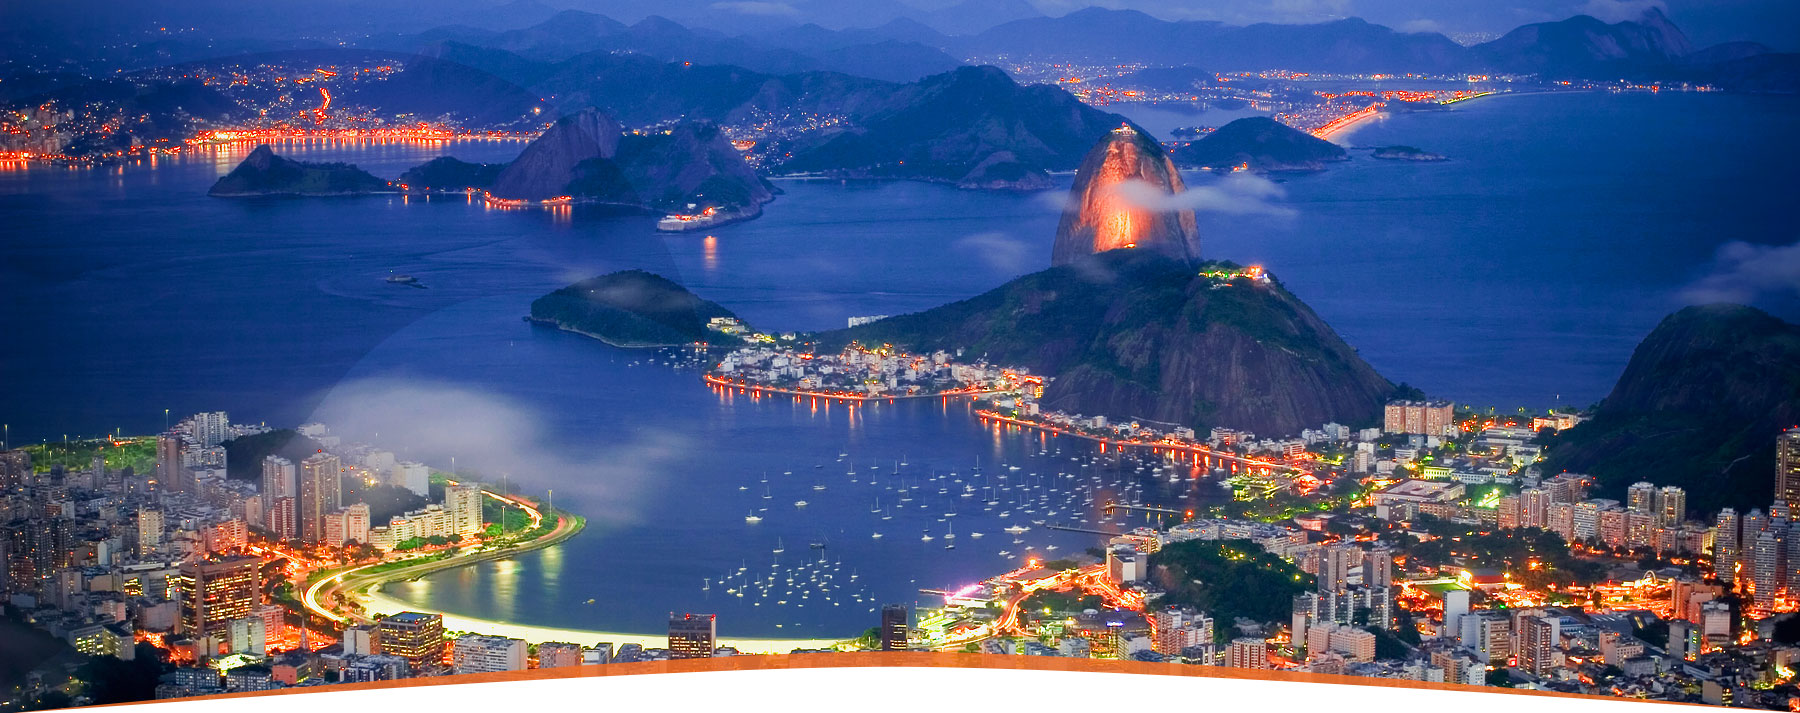 Rio de Janeiro lit up at night, with the iconic Sugarloaf Mountain towering over the city.